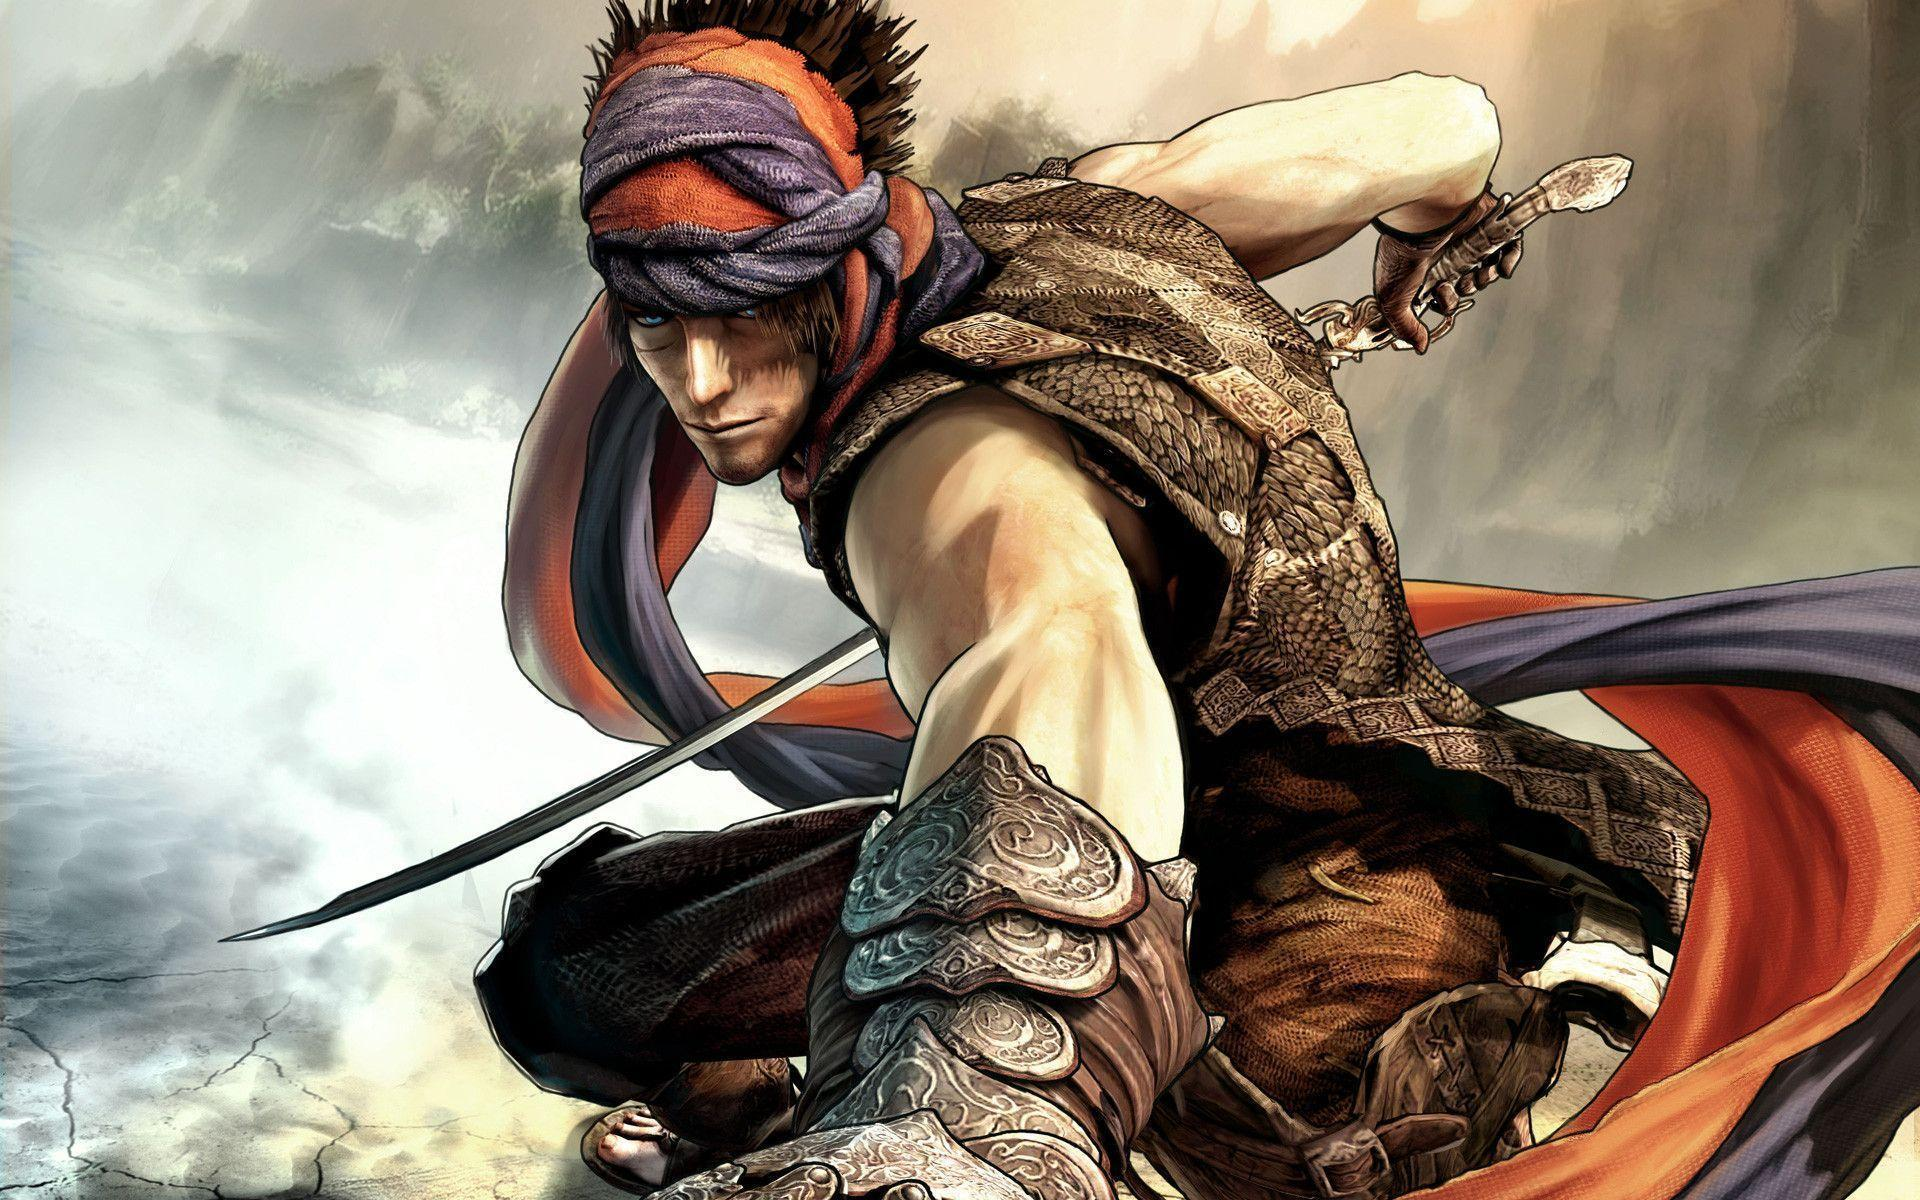 [74+] Prince Of Persia Movie Wallpapers on WallpaperSafari |Prince Of Persia Movie Wallpapers